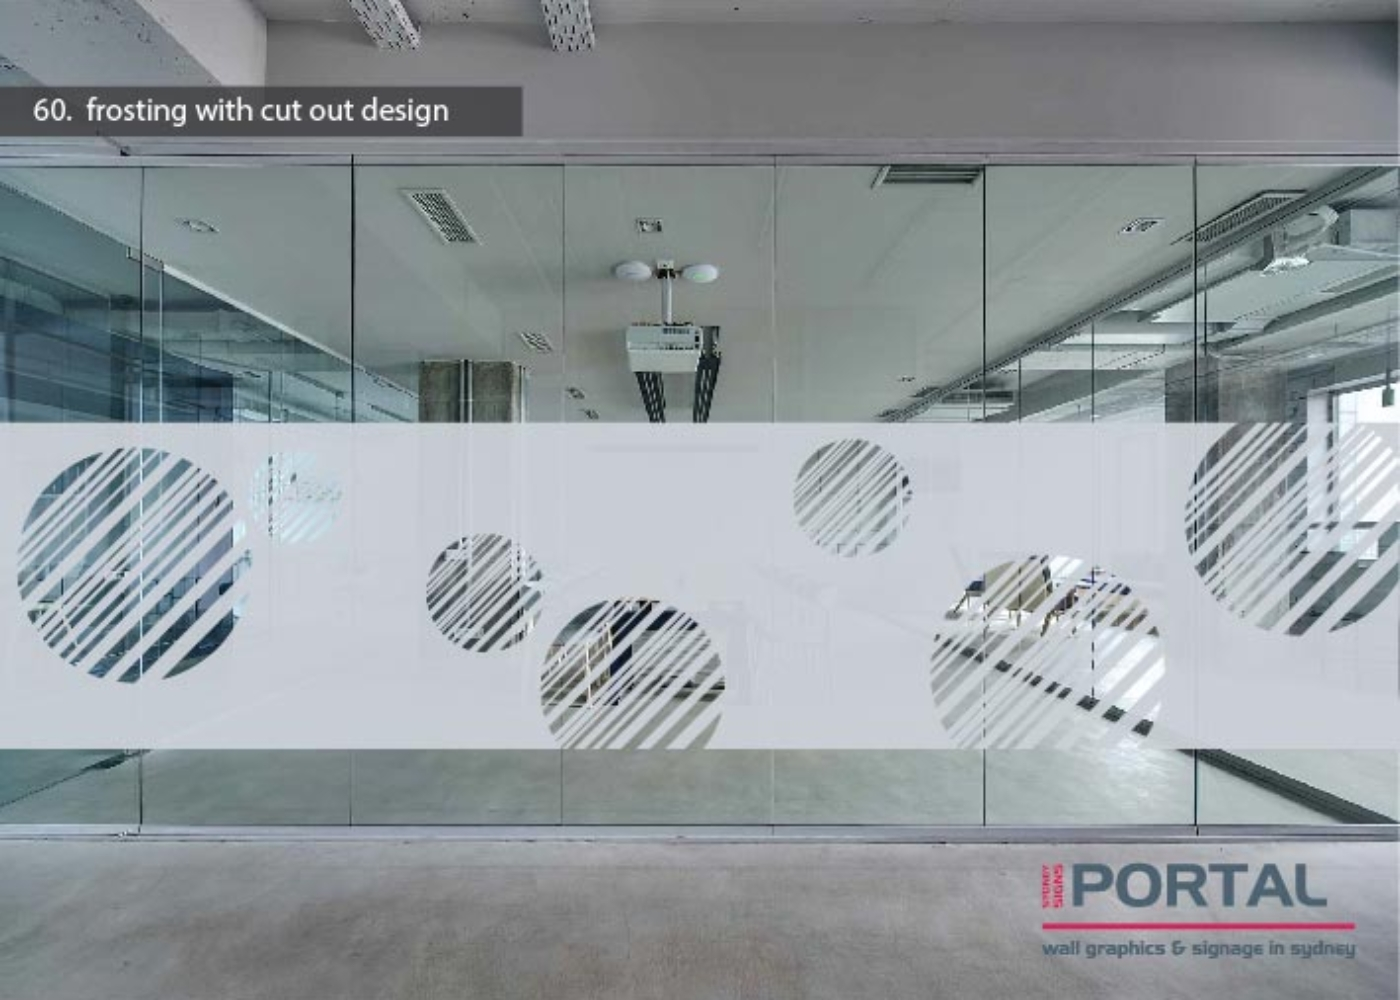 Window Frosting Concepts-60